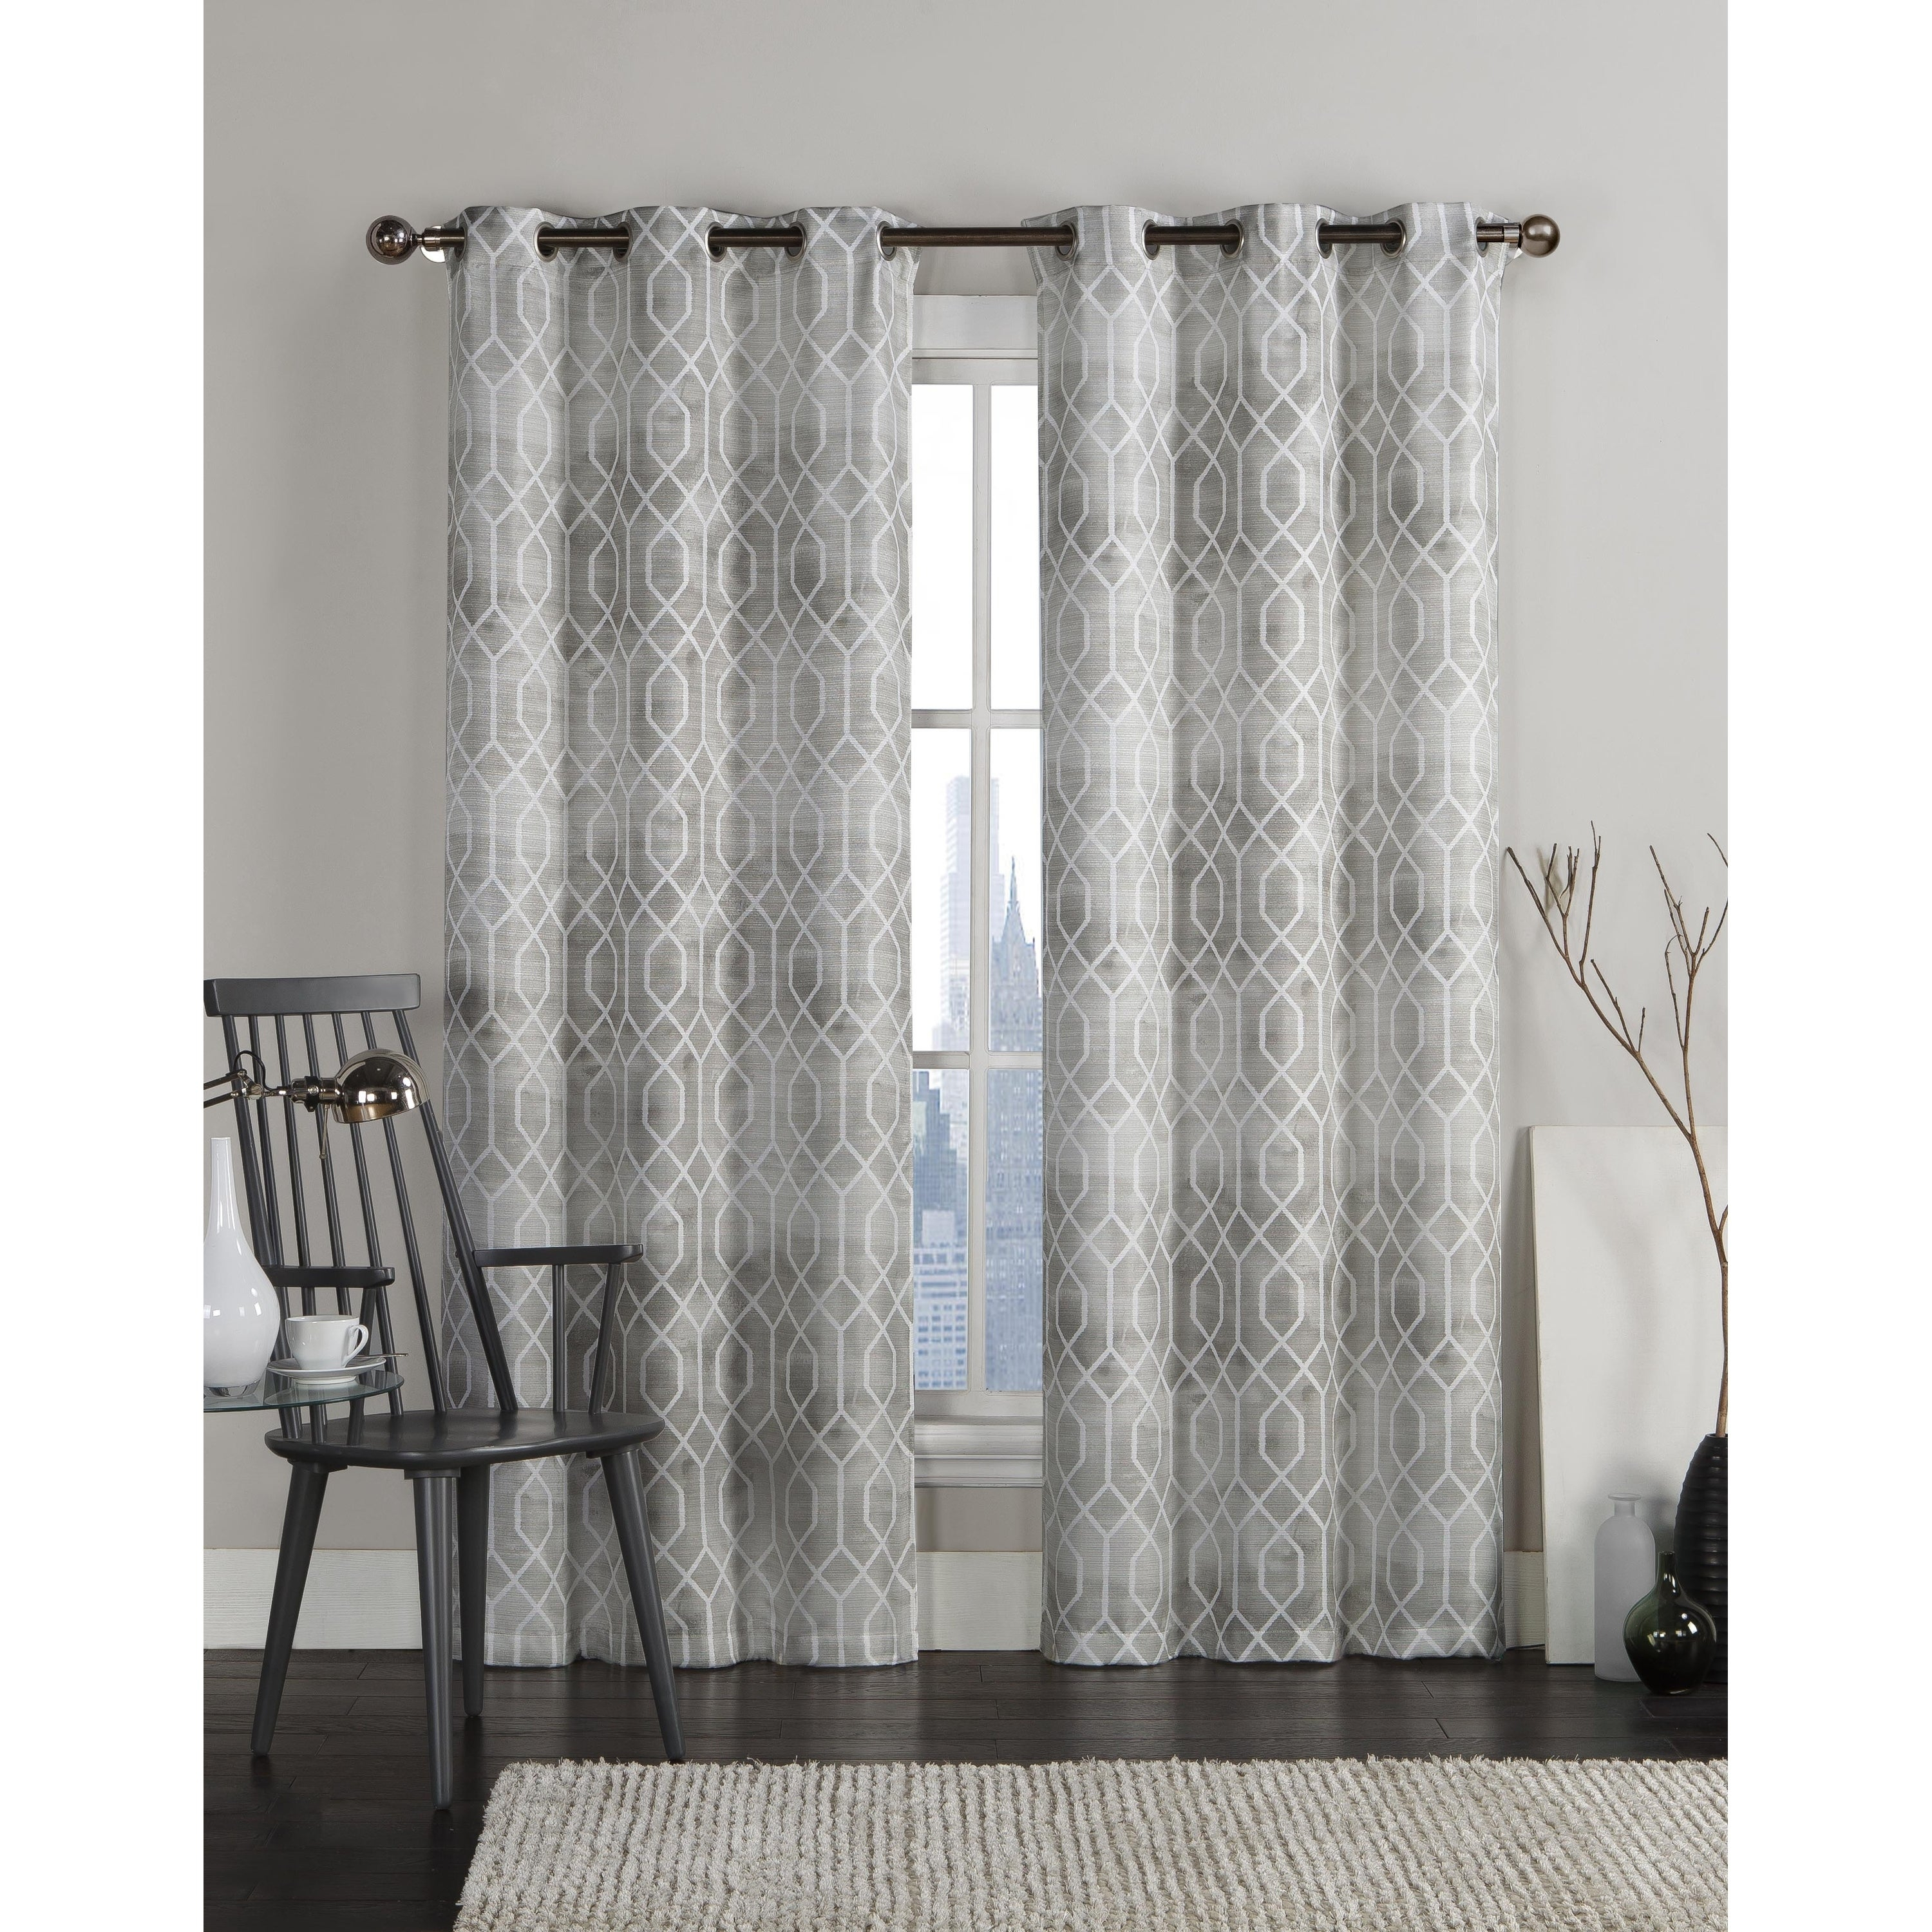 "Vcny Andreas Grommet Top 96 Inch Curtain Panel Pair – 38"" X 96"" Pertaining To Caldwell Curtain Panel Pairs (View 13 of 20)"